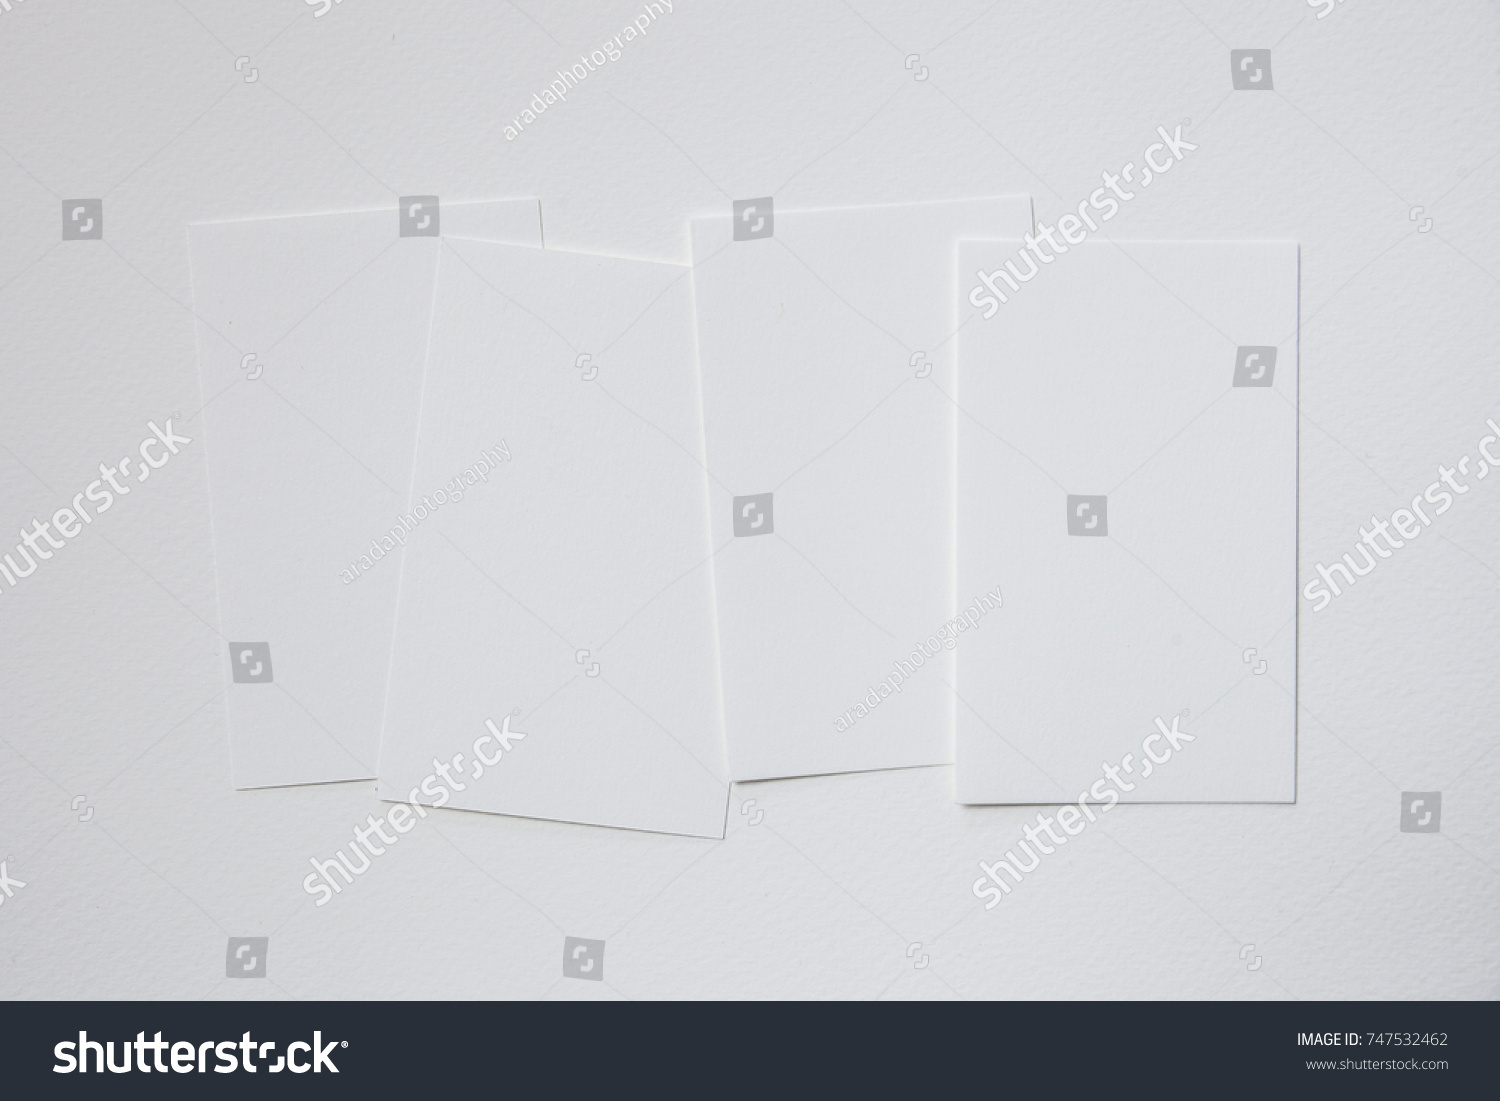 White Paper Blank Business Card Stock Photo 747532462 - Shutterstock